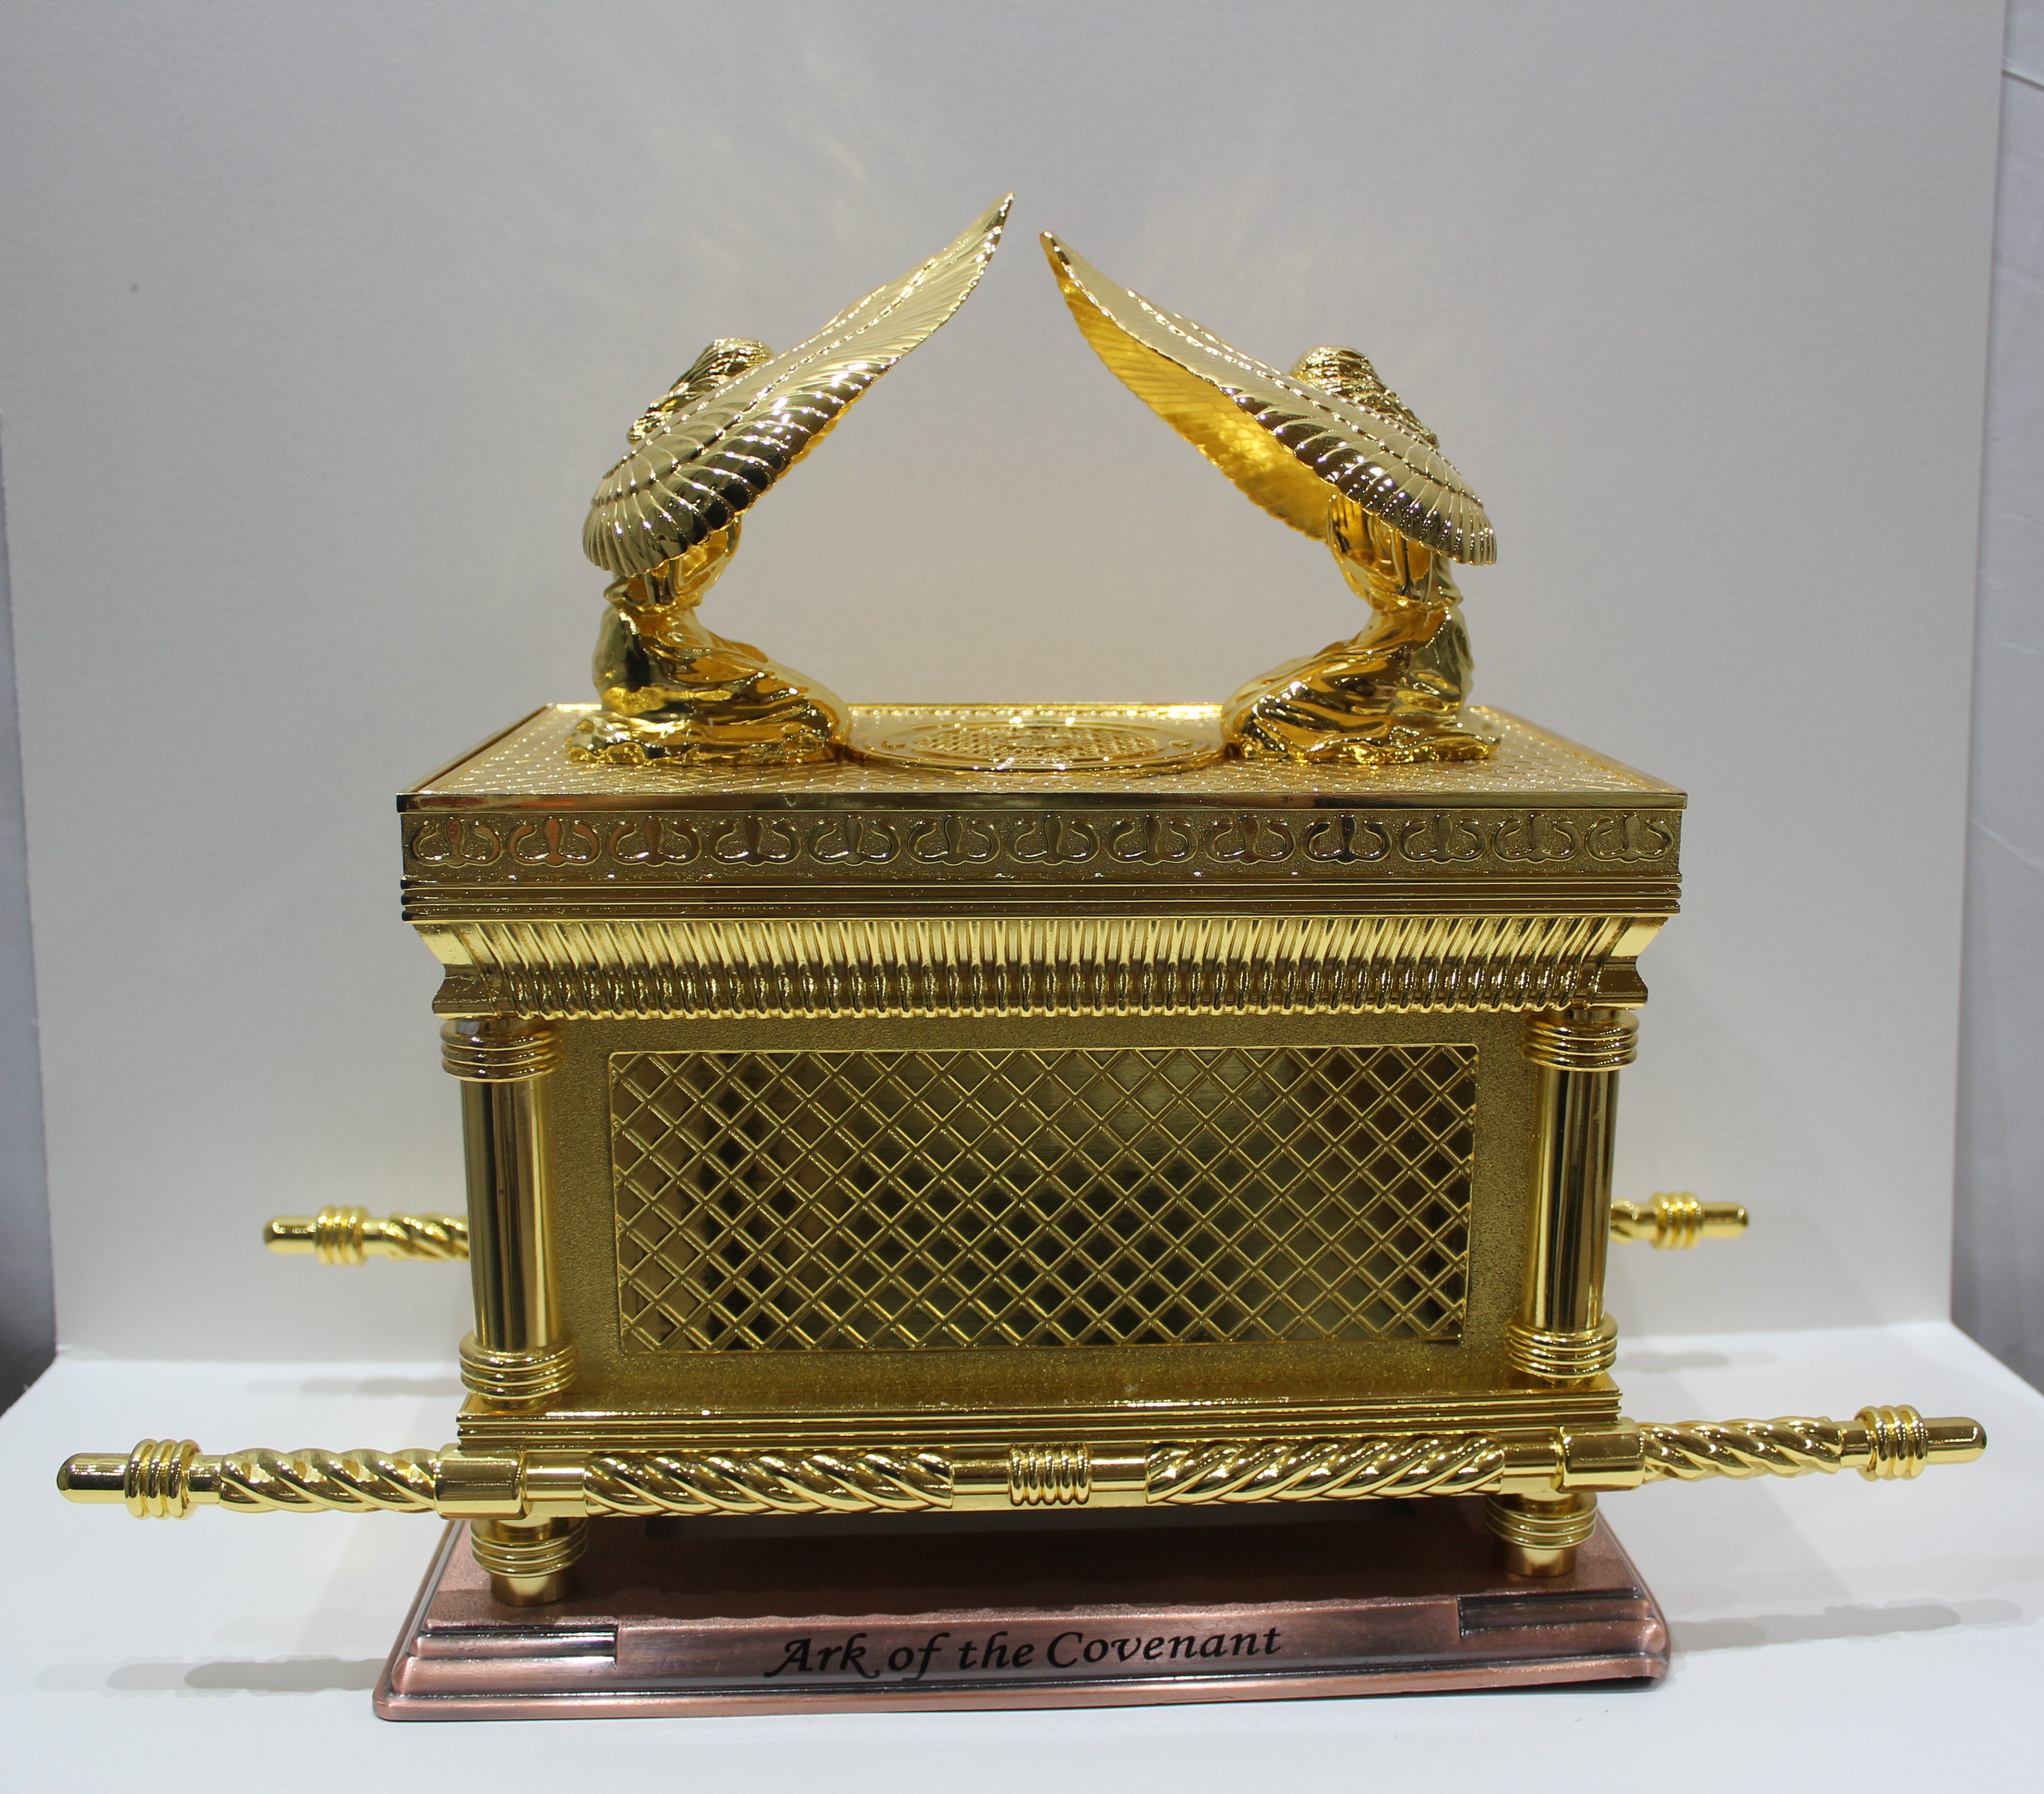 Ark of the Covenant - big size